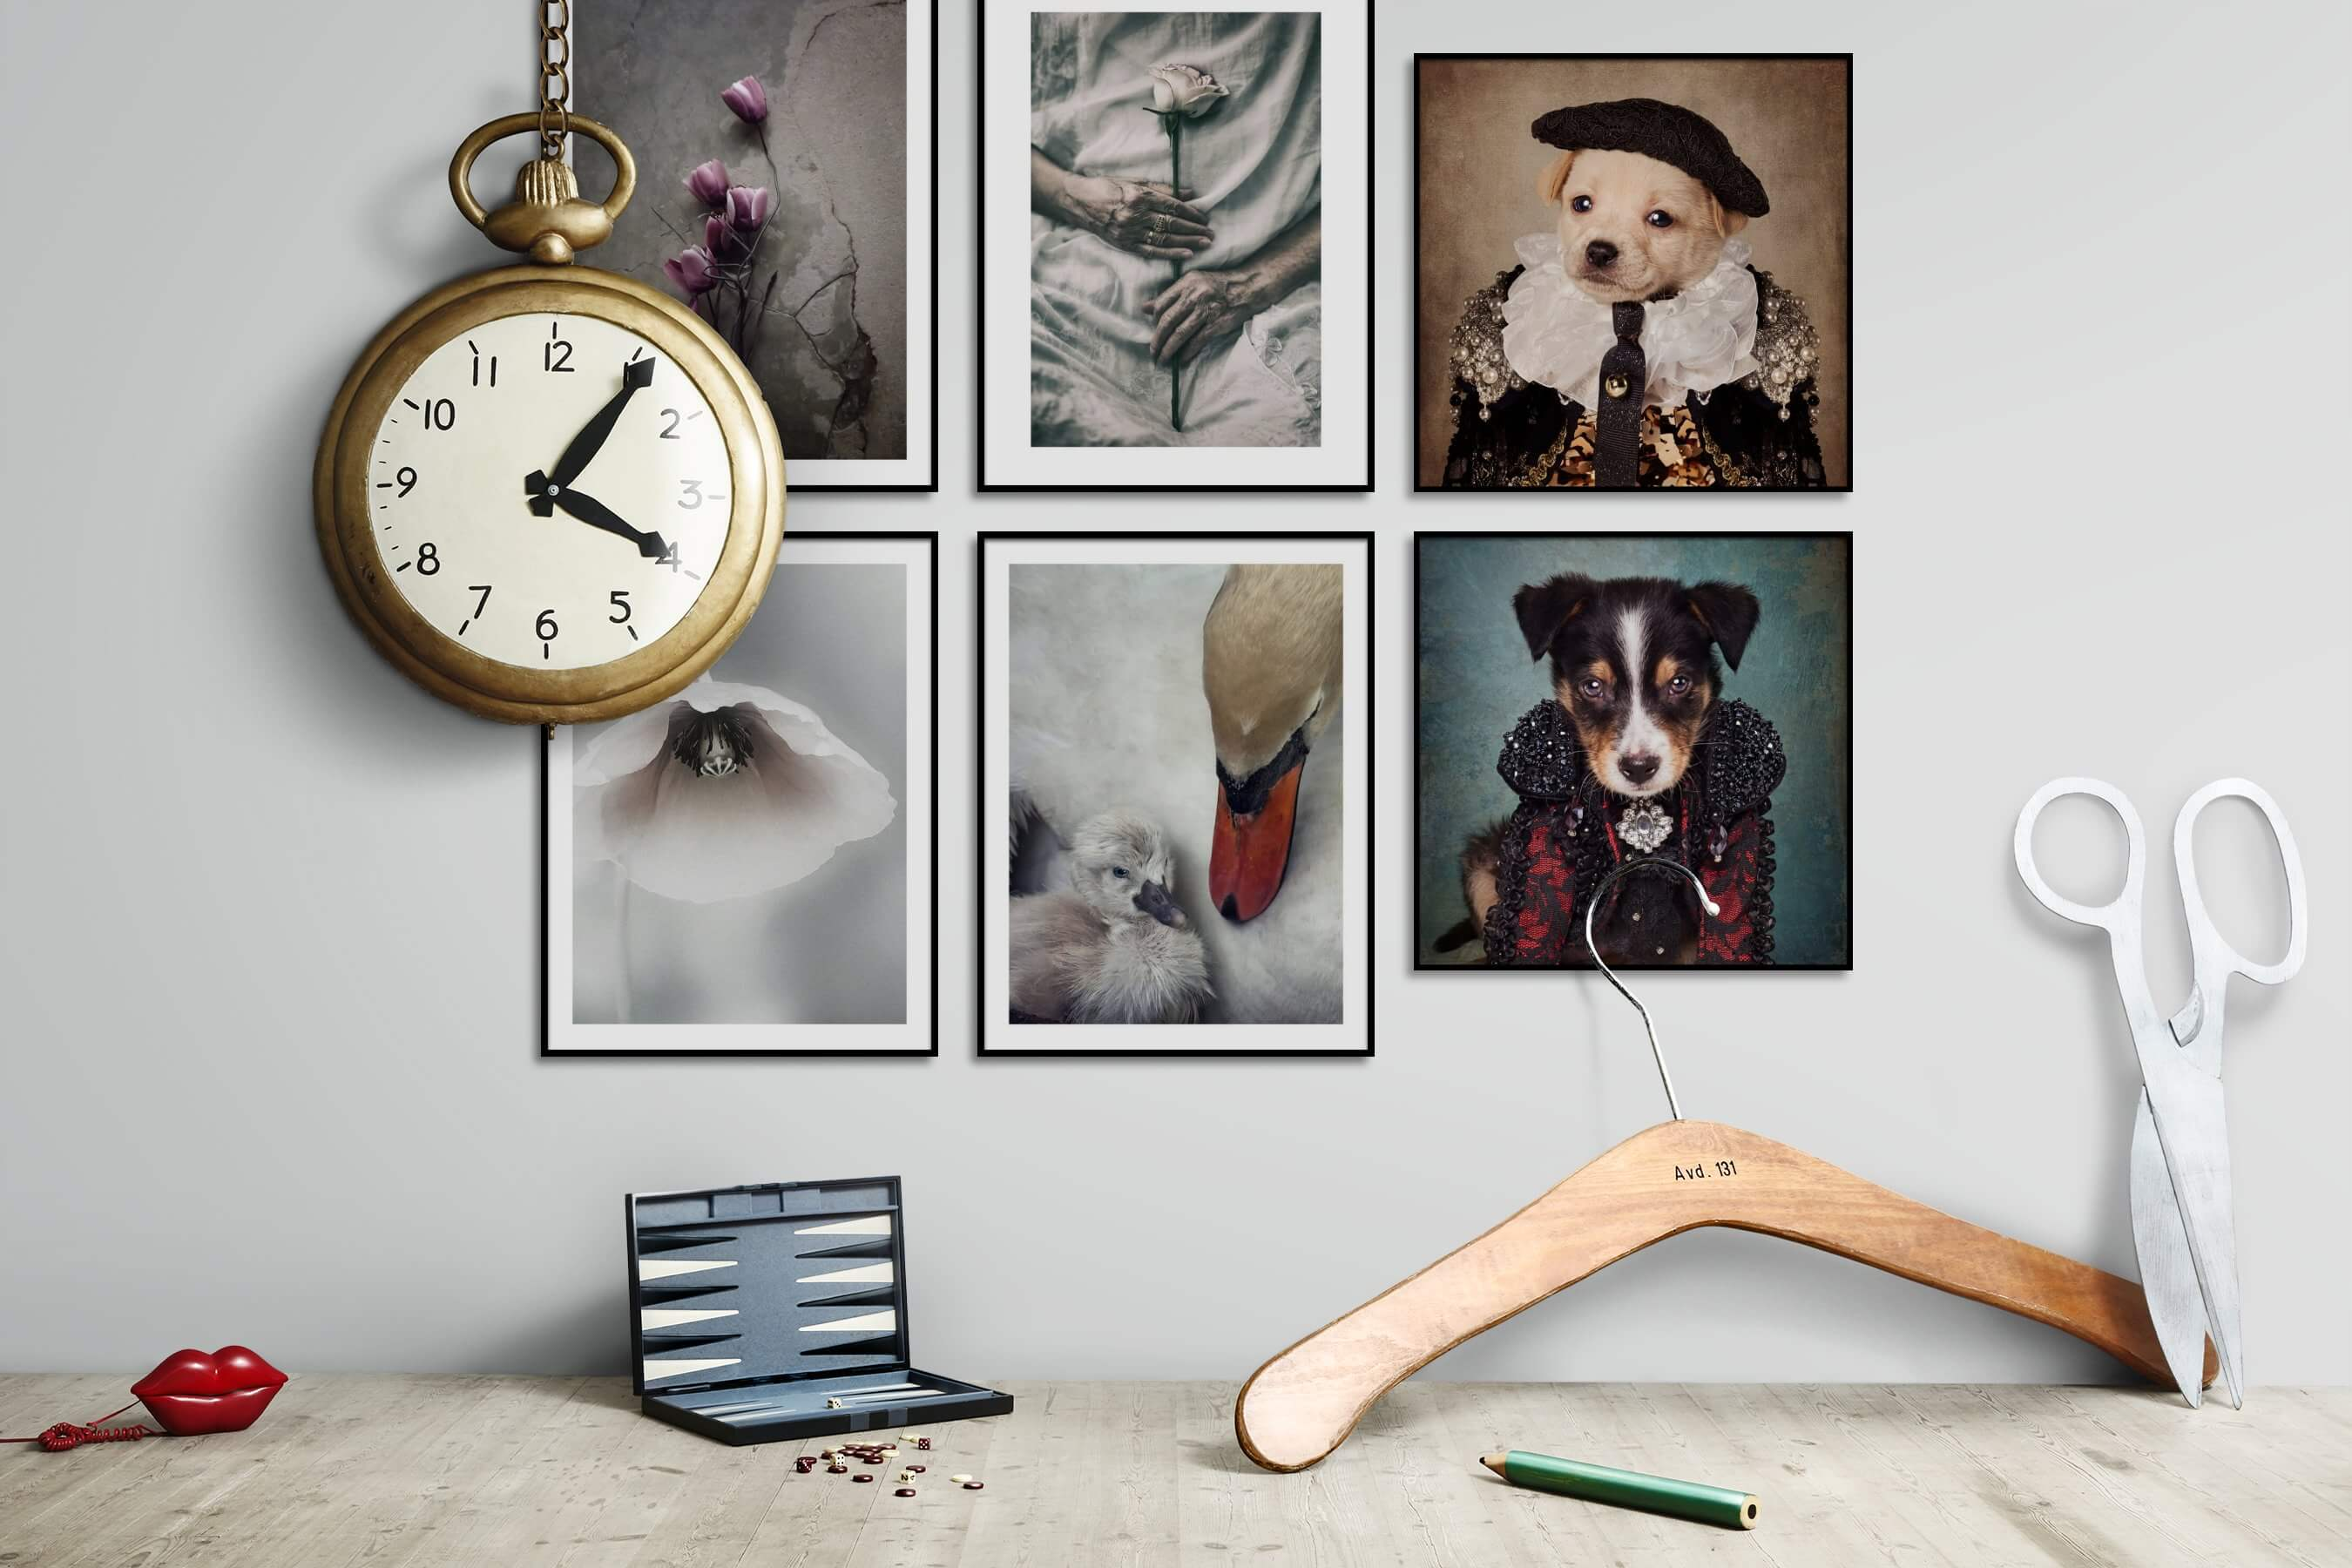 Gallery wall idea with six framed pictures arranged on a wall depicting Flowers & Plants, Artsy, For the Minimalist, Animals, and Vintage